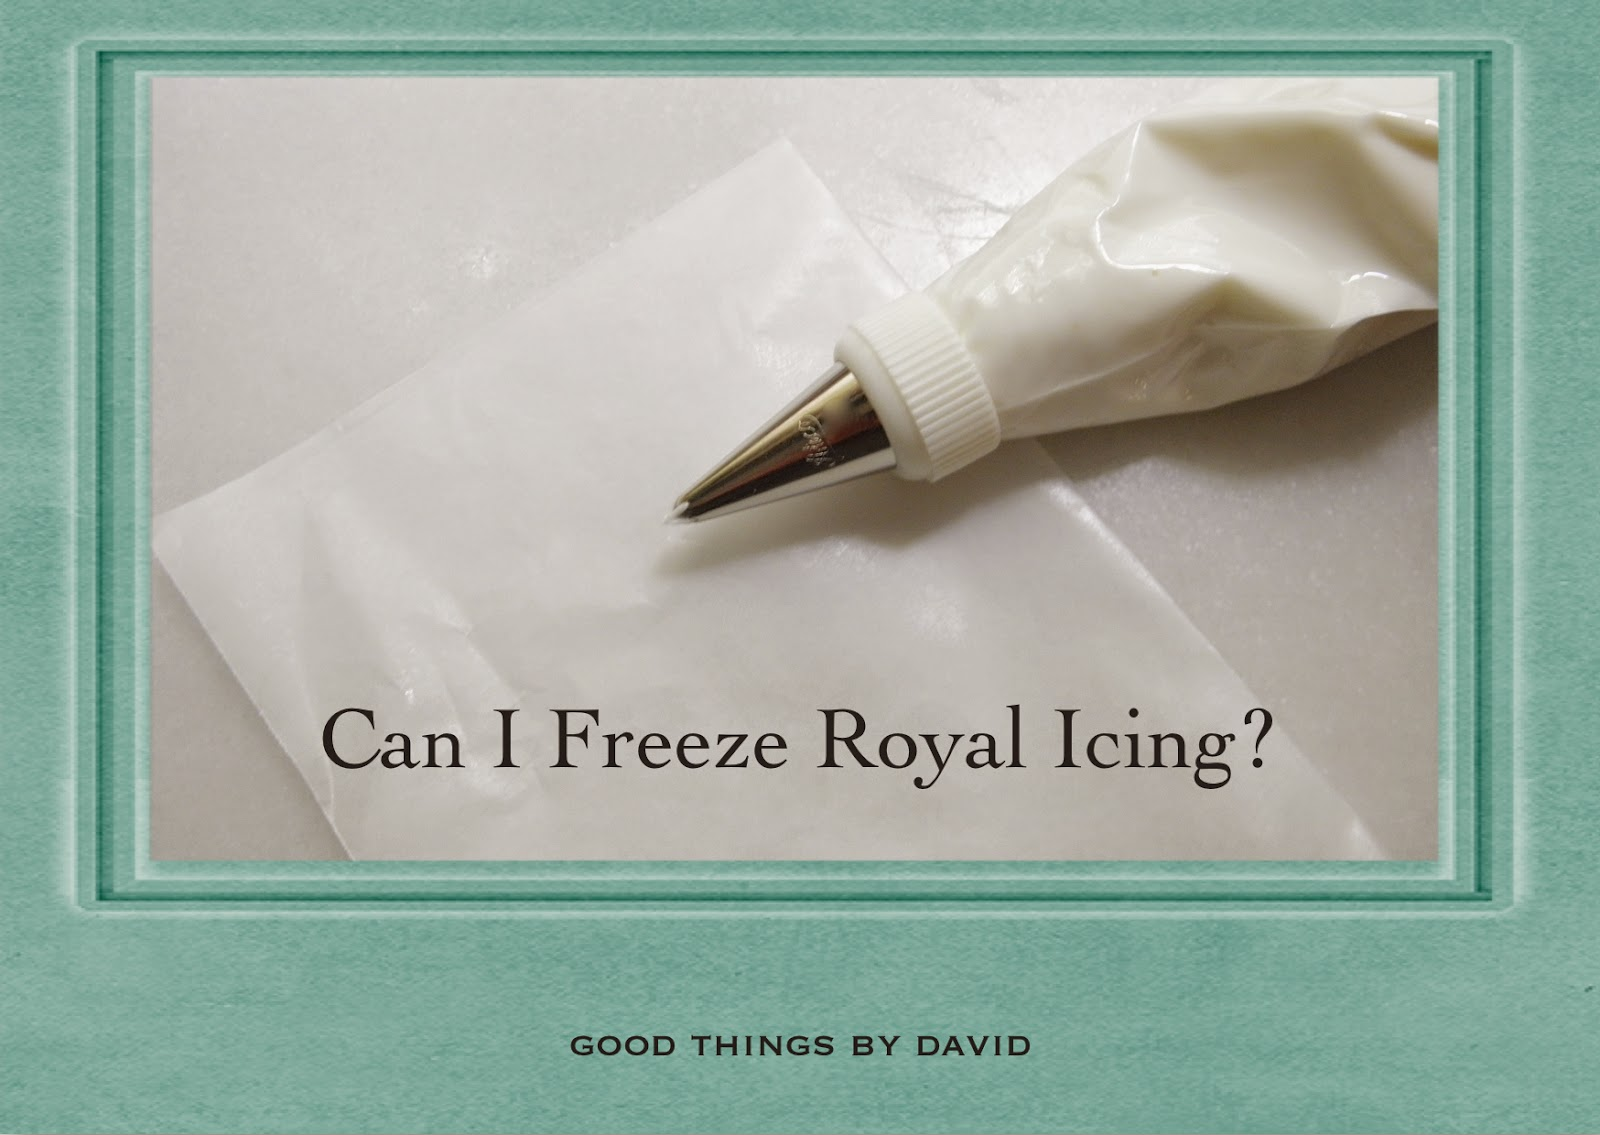 Good Things by David: Can I Freeze Royal Icing?